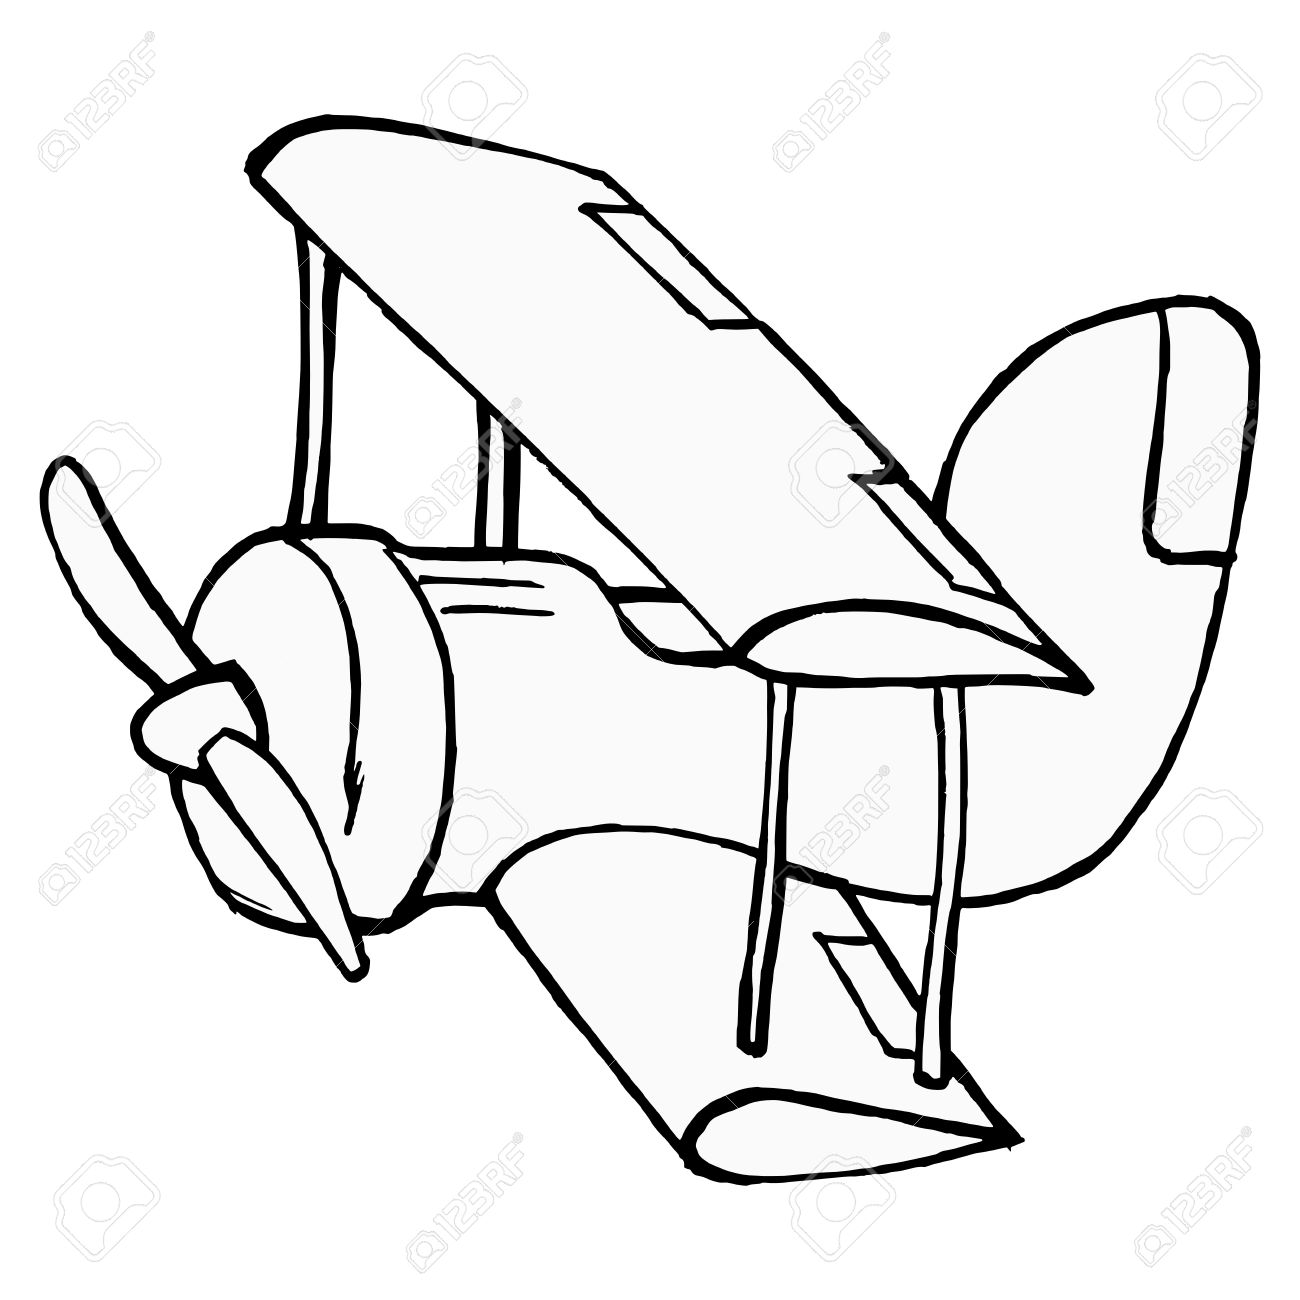 1300x1300 Hand Drawn, Cartoon, Illustration Of Toy Airplane Royalty Free